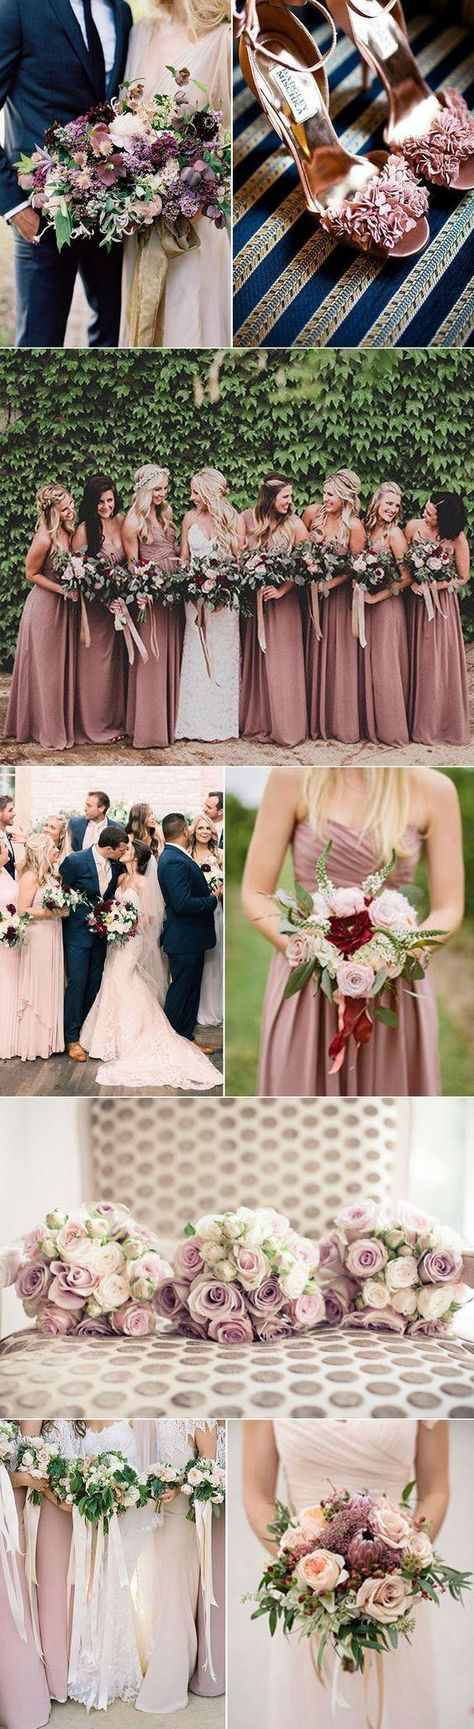 Lace button up wedding dress november 2018  best dream wedding dreaming images on Pinterest  Marriage